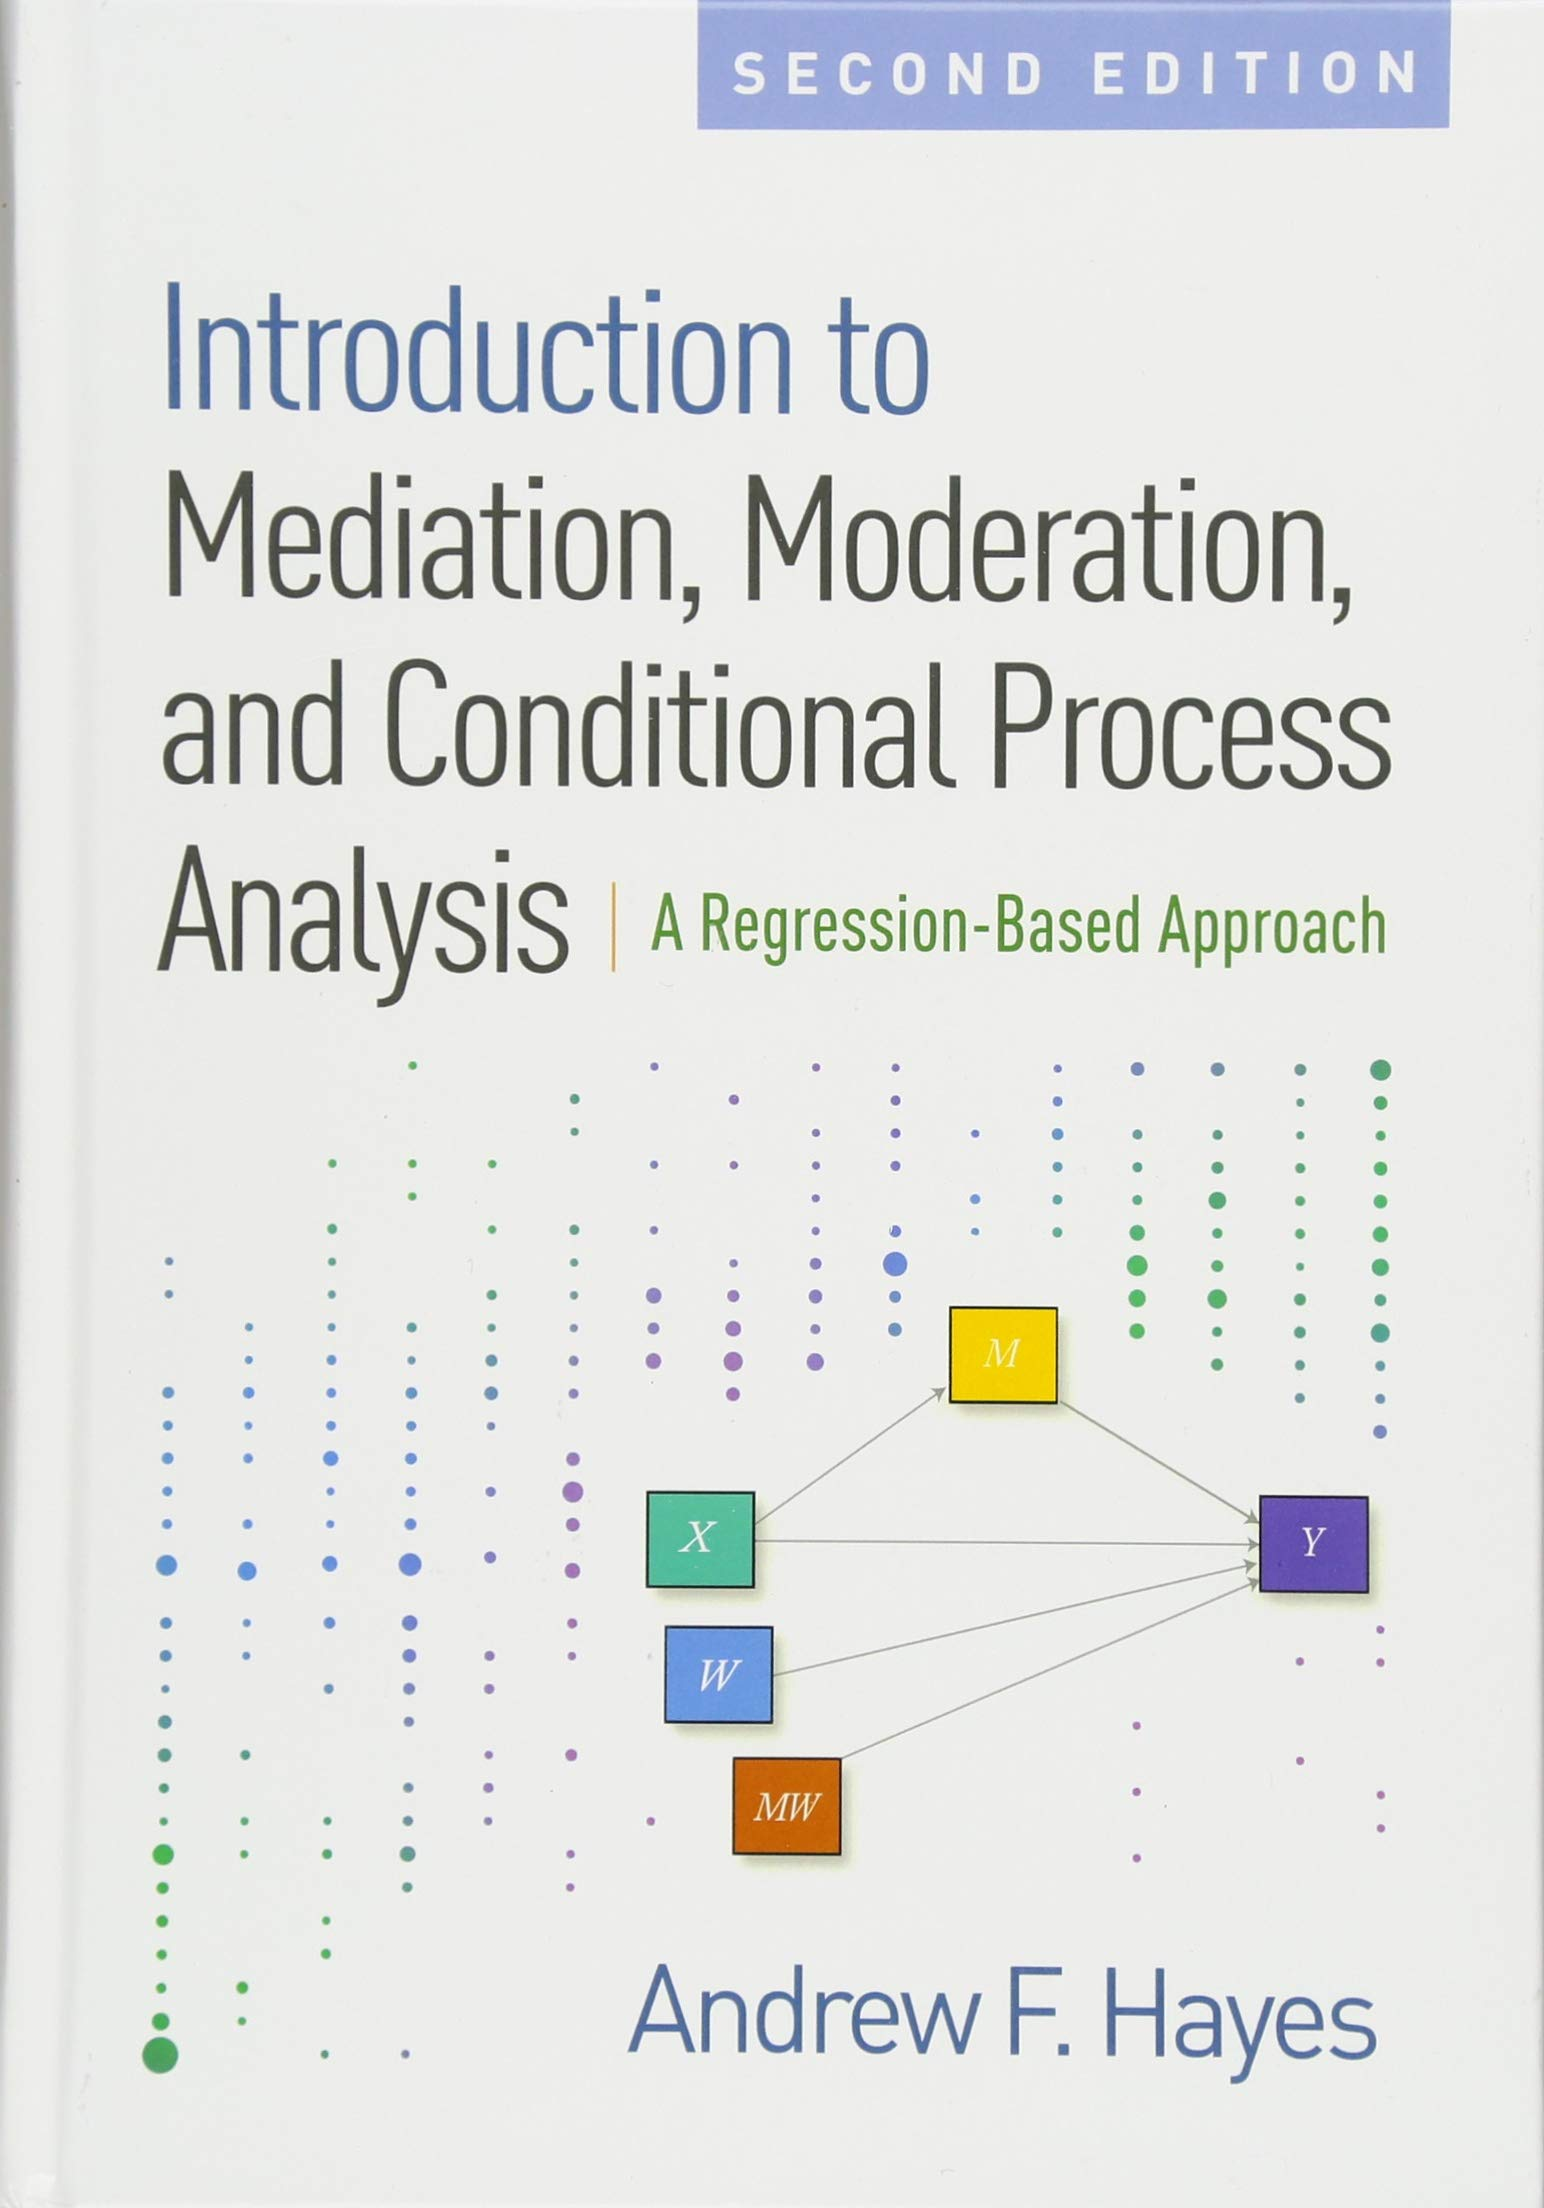 Introduction to Mediation, Moderation, and